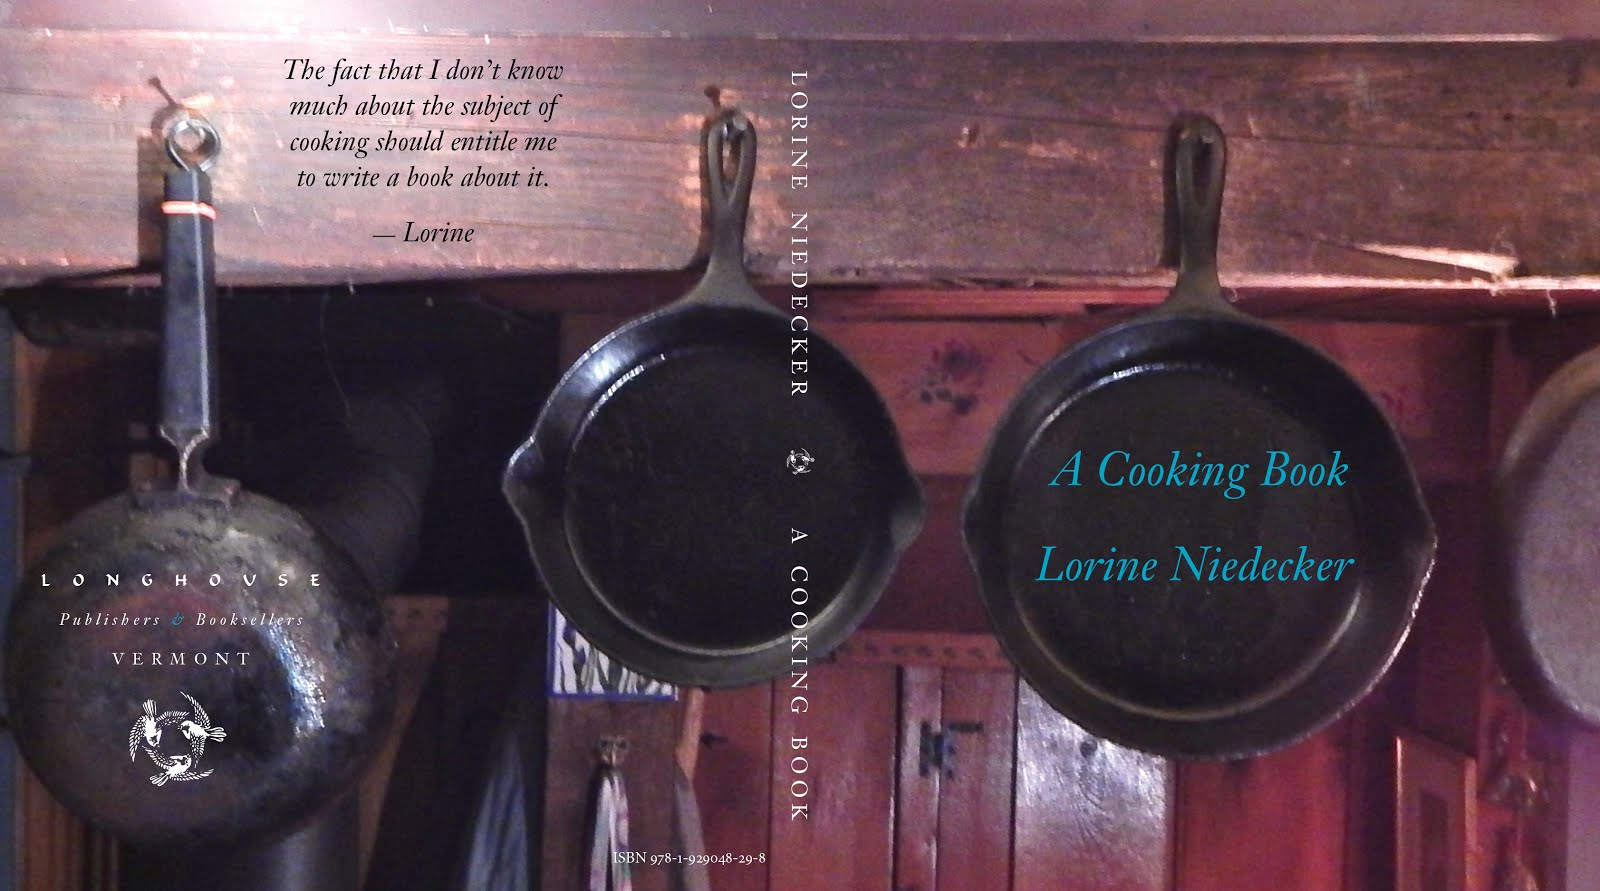 Lorine Niedecker's A Cooking Book